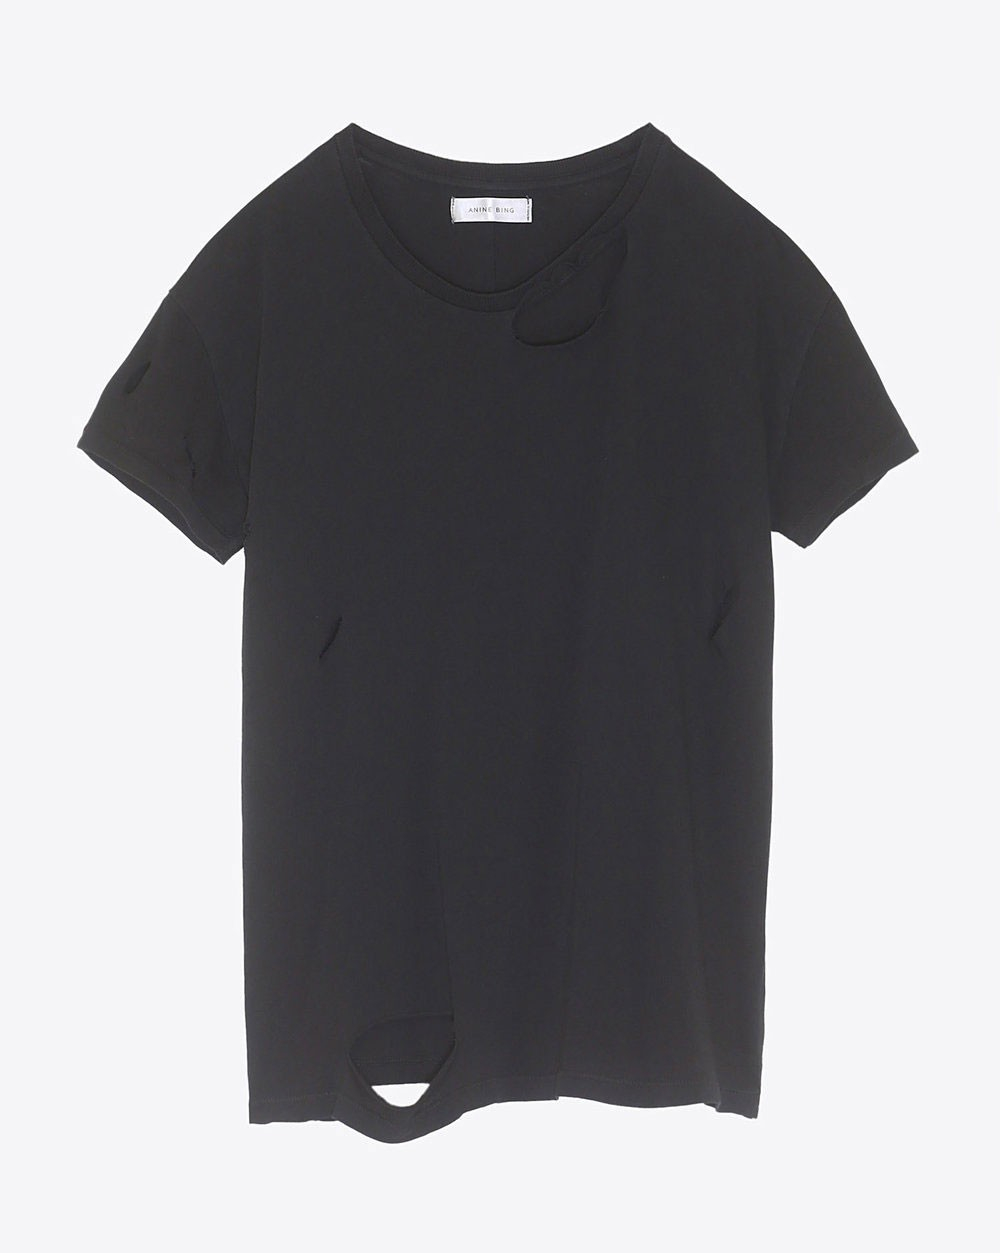 Anine Bing Permanent Distressed T-Shirt in Black